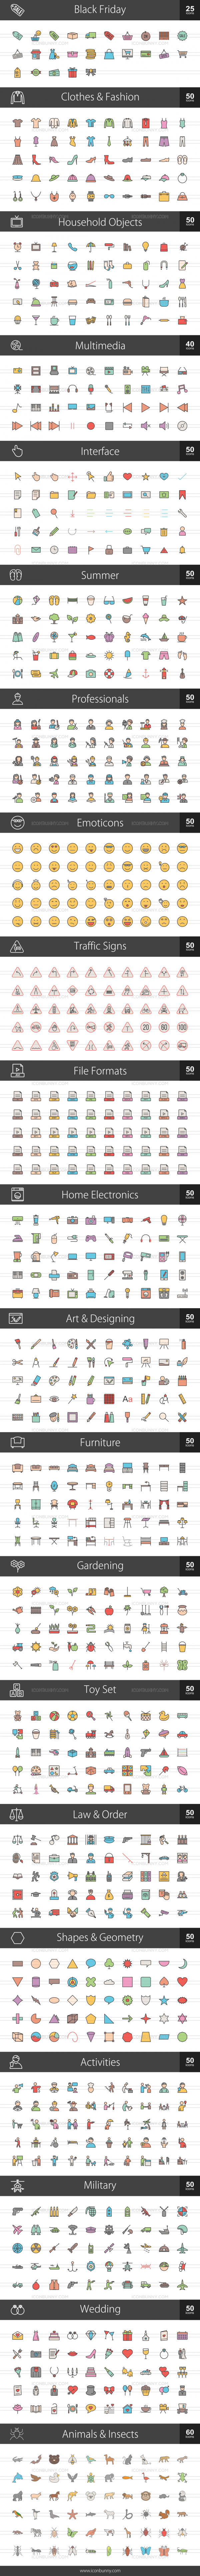 1025 Line Multicolor Filled Icons Bundle - Preview - IconBunny